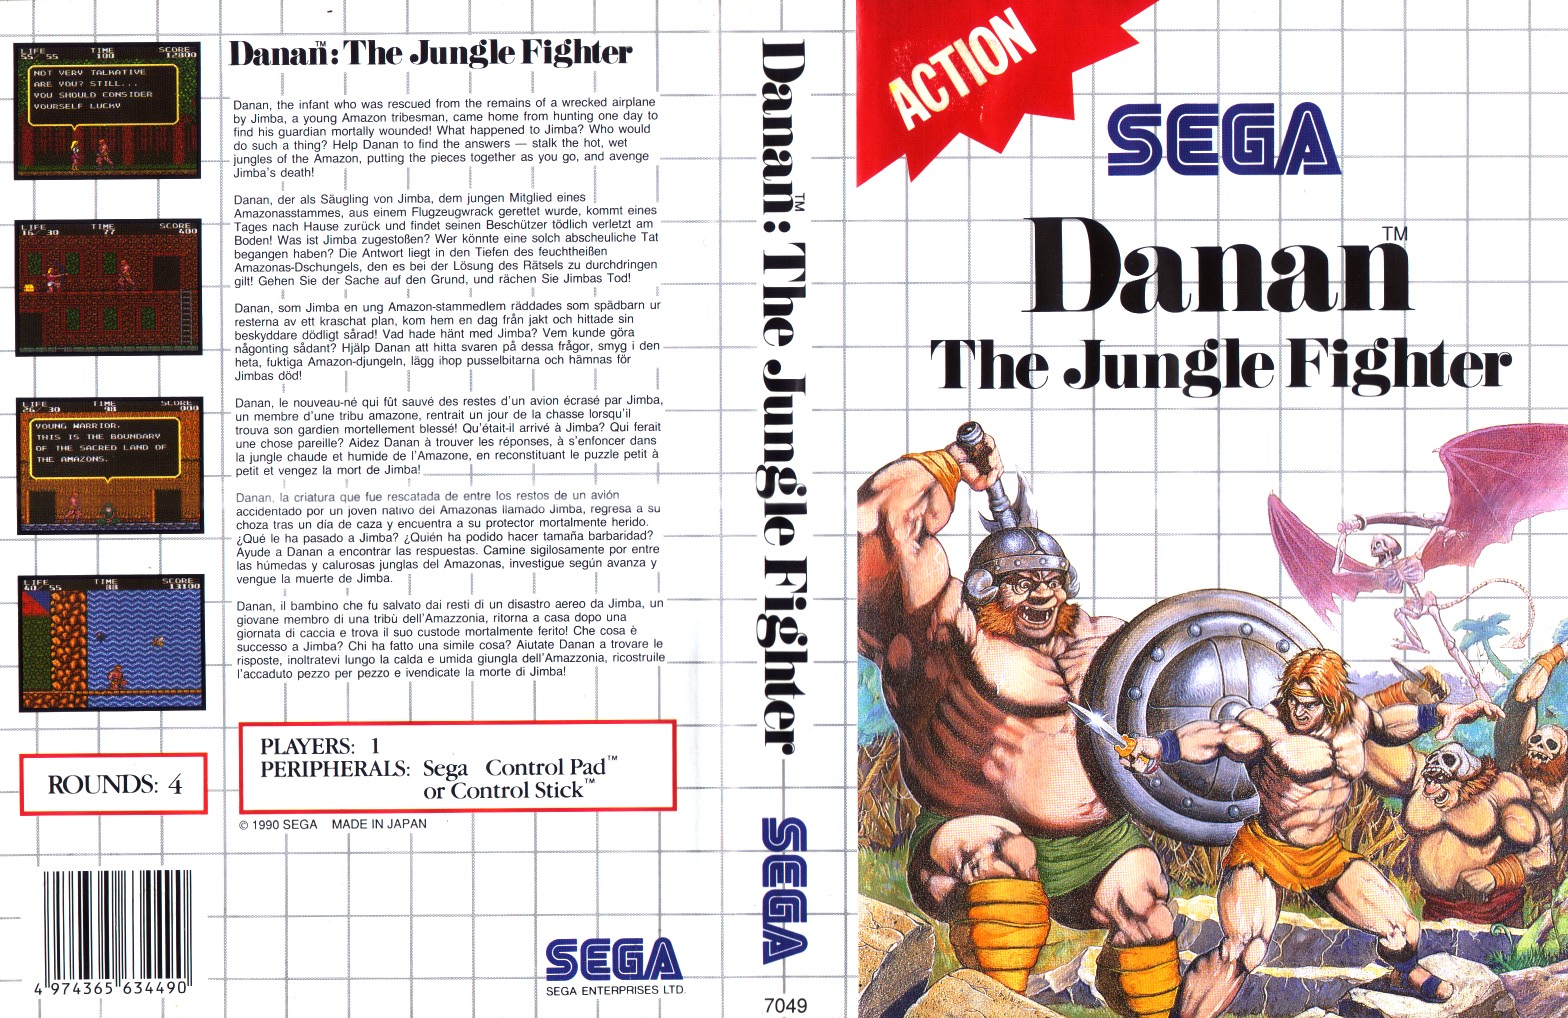 http://www.smspower.org/uploads/Scans/DananTheJungleFighter-SMS-EU.jpg